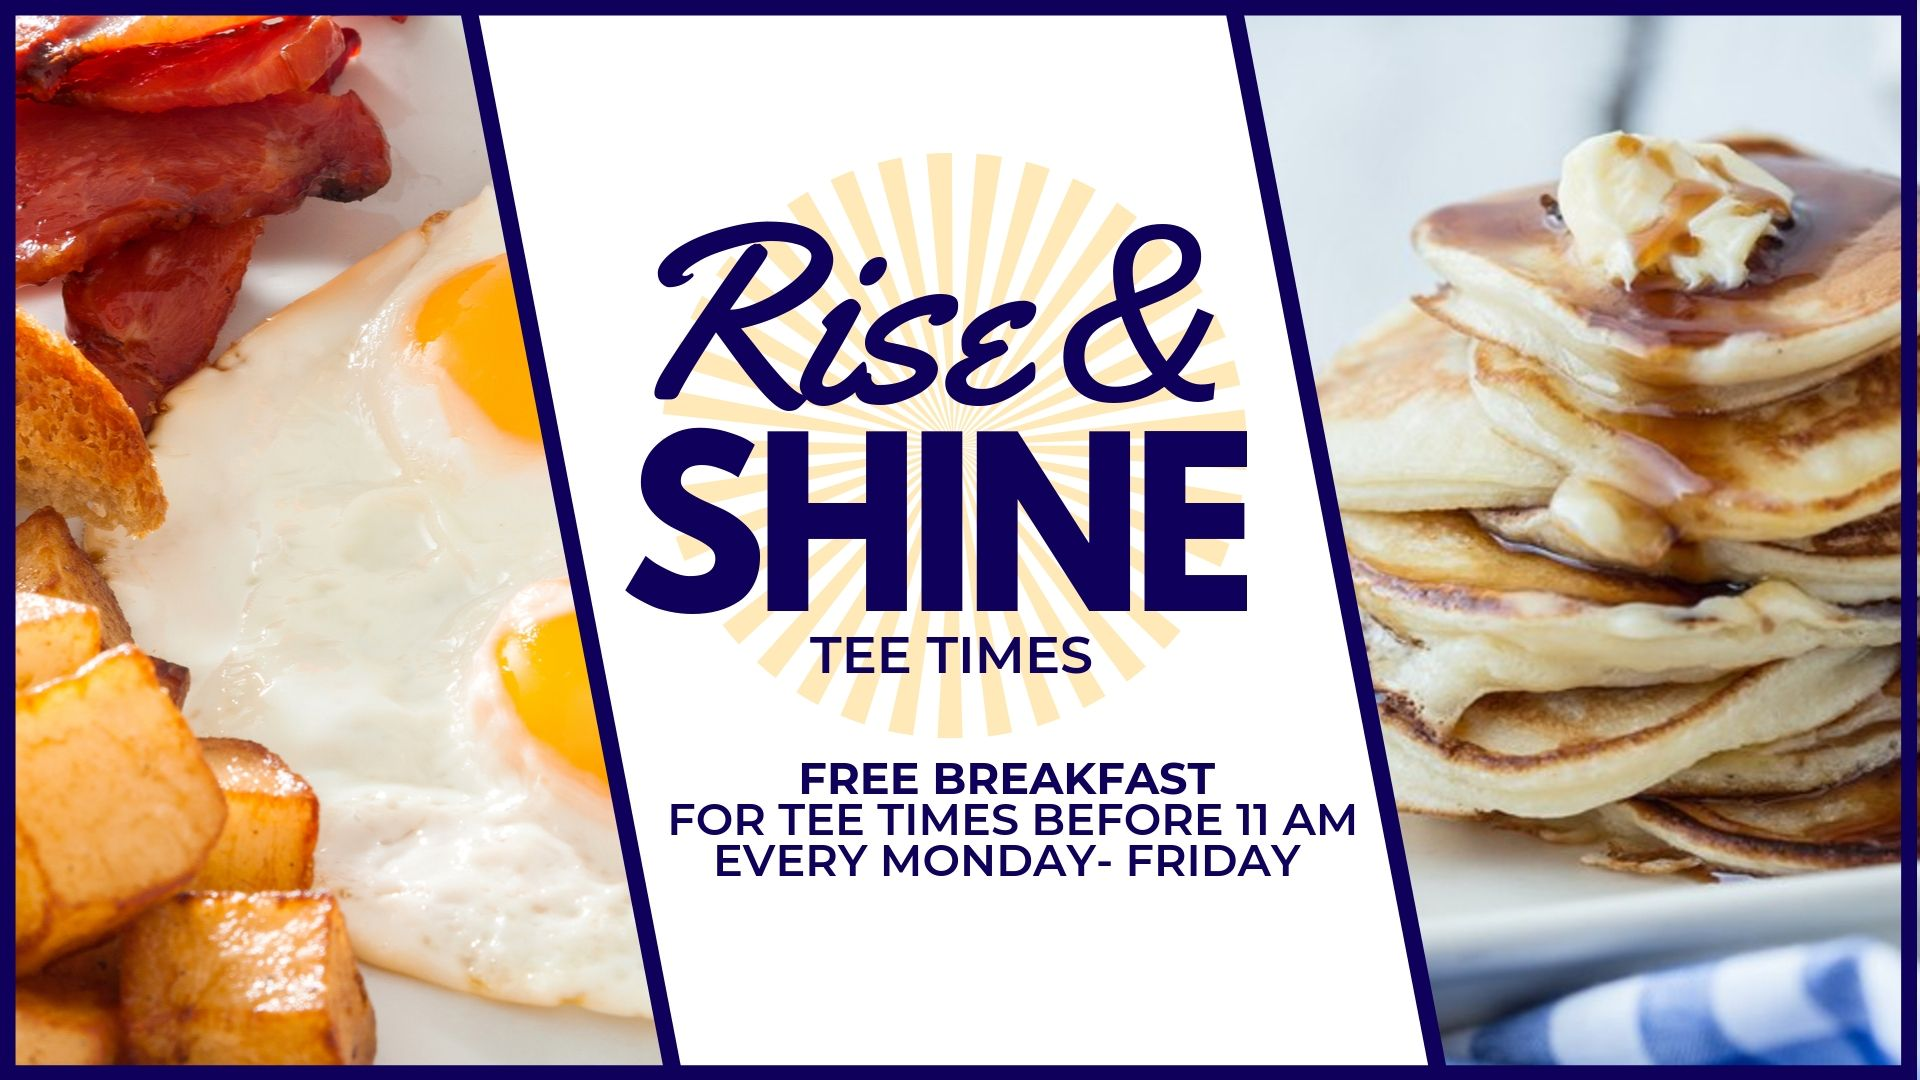 We've extended our Rise & Shine Tee Times!